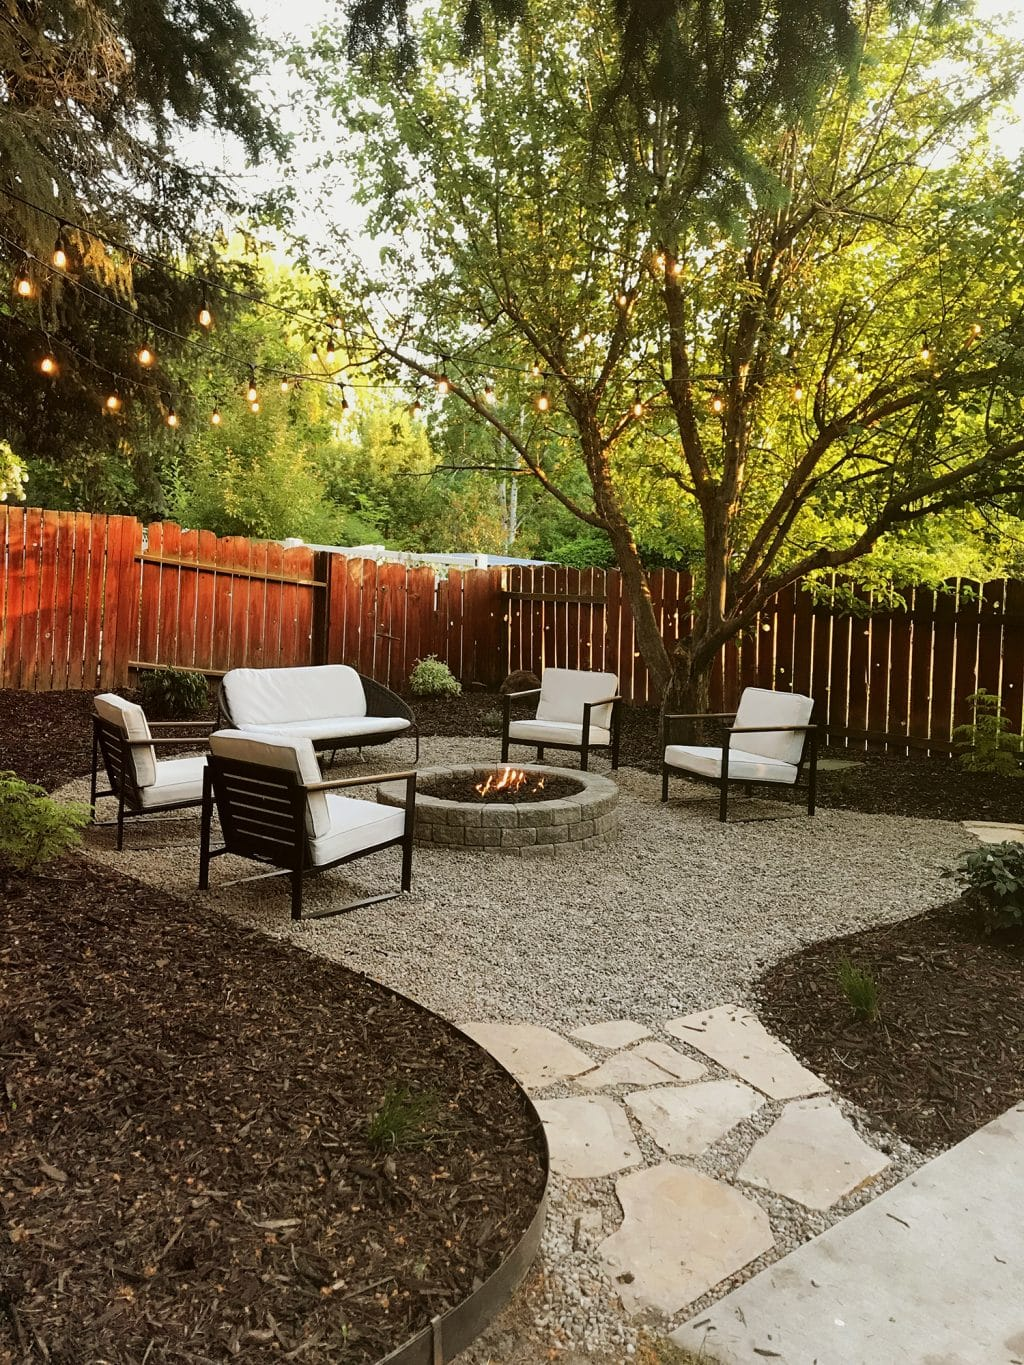 A Backyard Makeover in a Weekend - Chris Loves Julia on Small Backyard Renovation Ideas id=81115